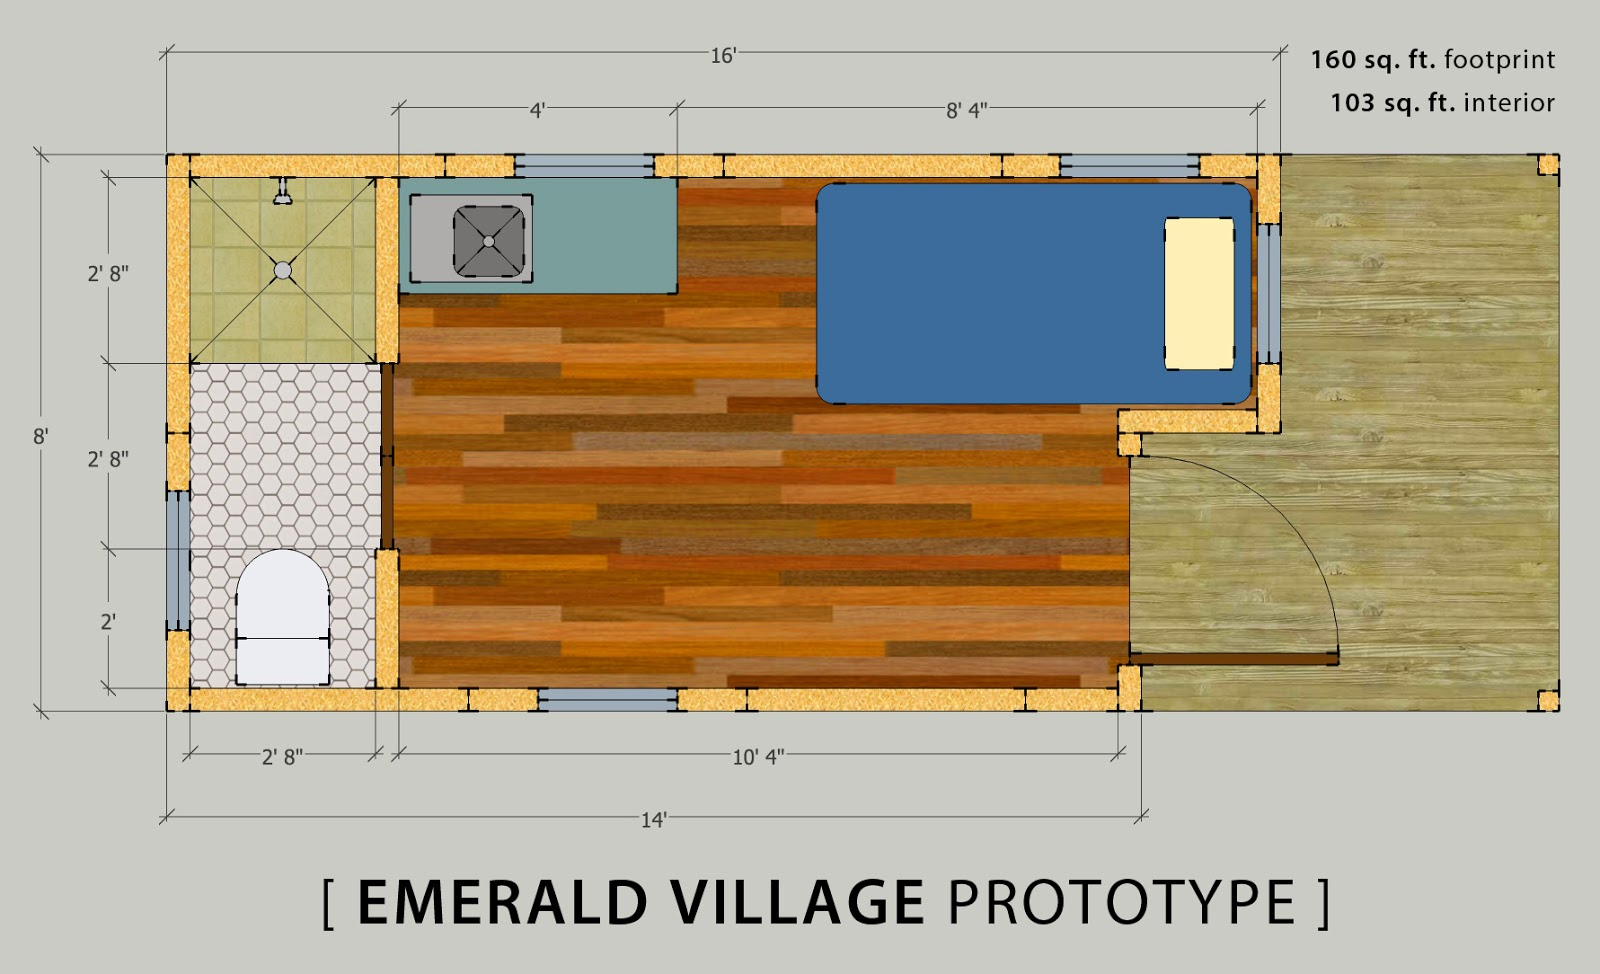 Tiny house prototype that meets 2015 irc minimum area for Bathroom remodel 70 square feet